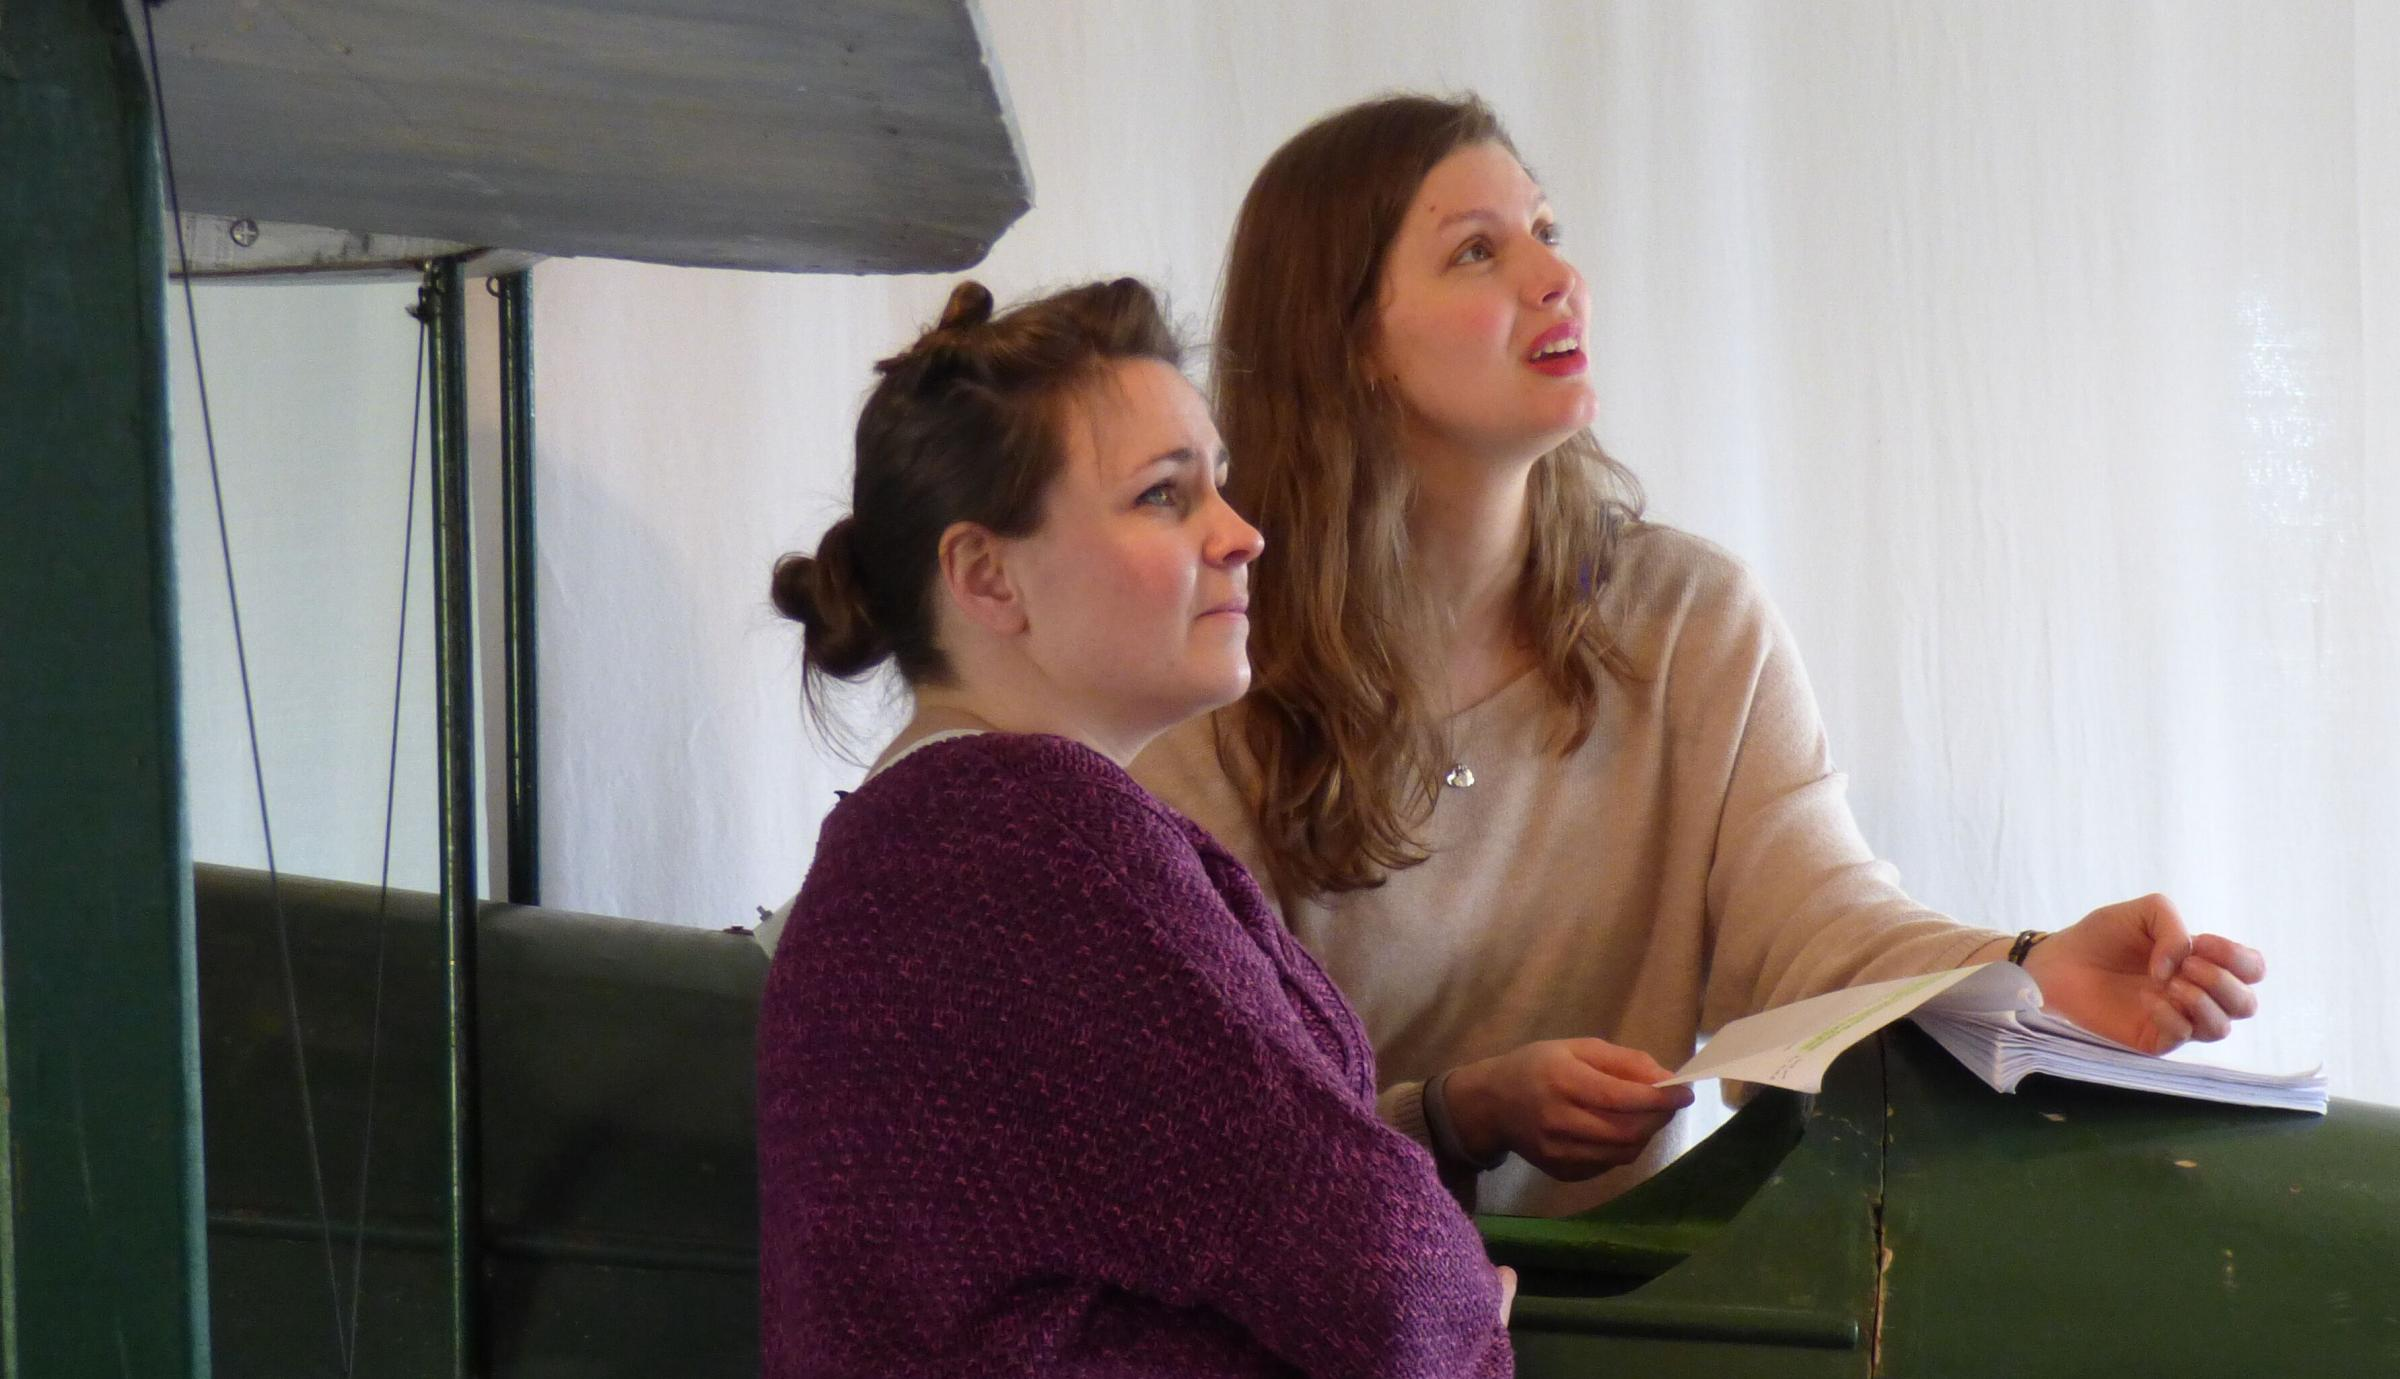 Frances Tither, left, and Sarah Raine in Badapple Theatre Company's Amy Johnson